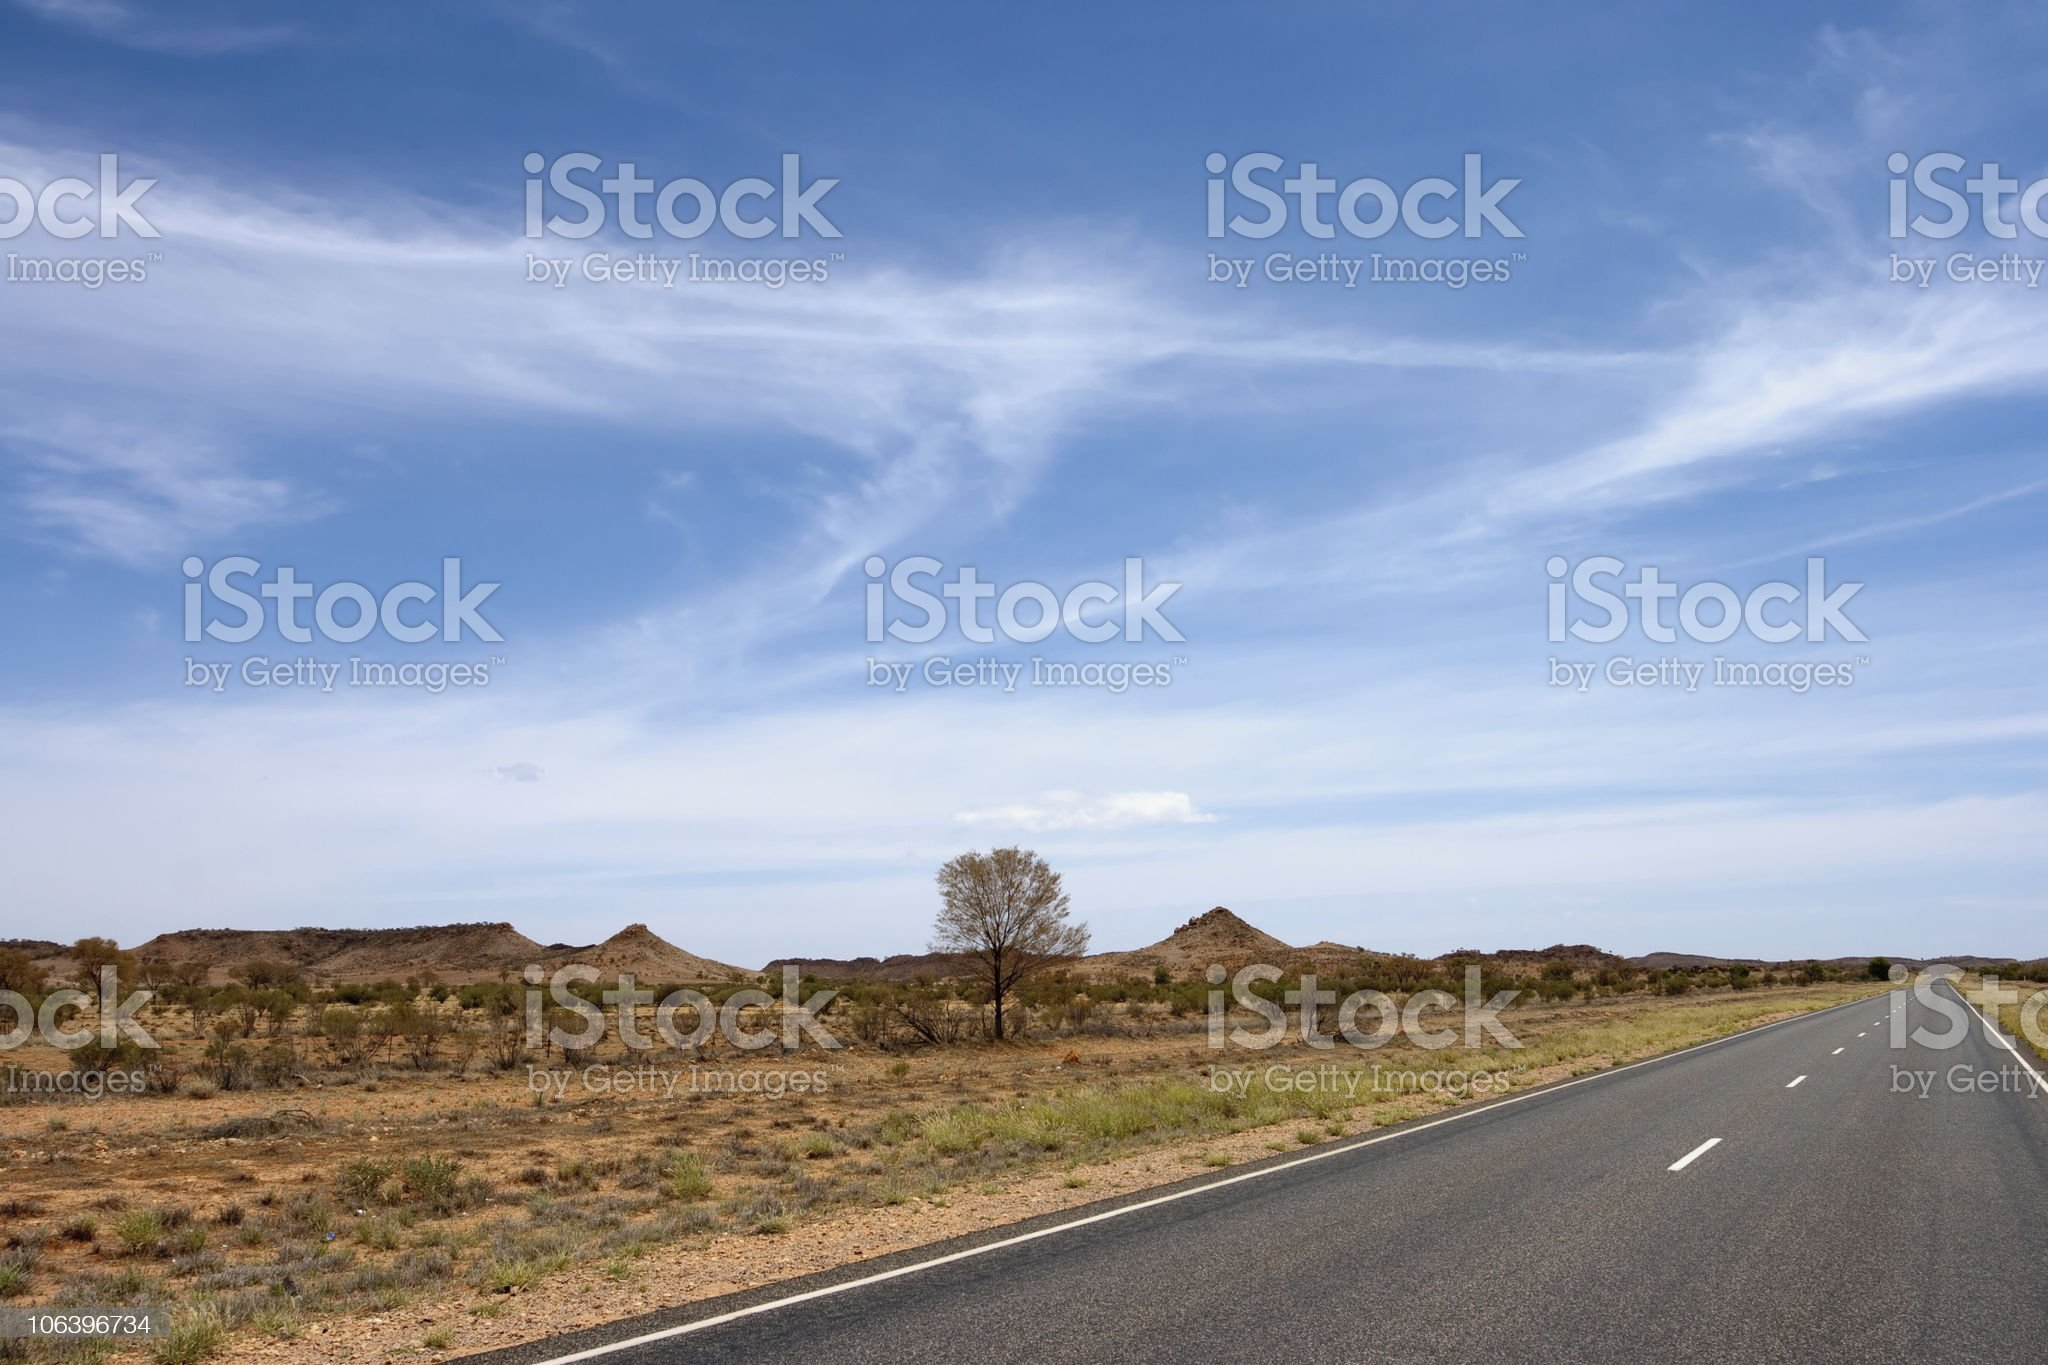 Outback Landscape with Empty Road,Australia royalty-free stock photo